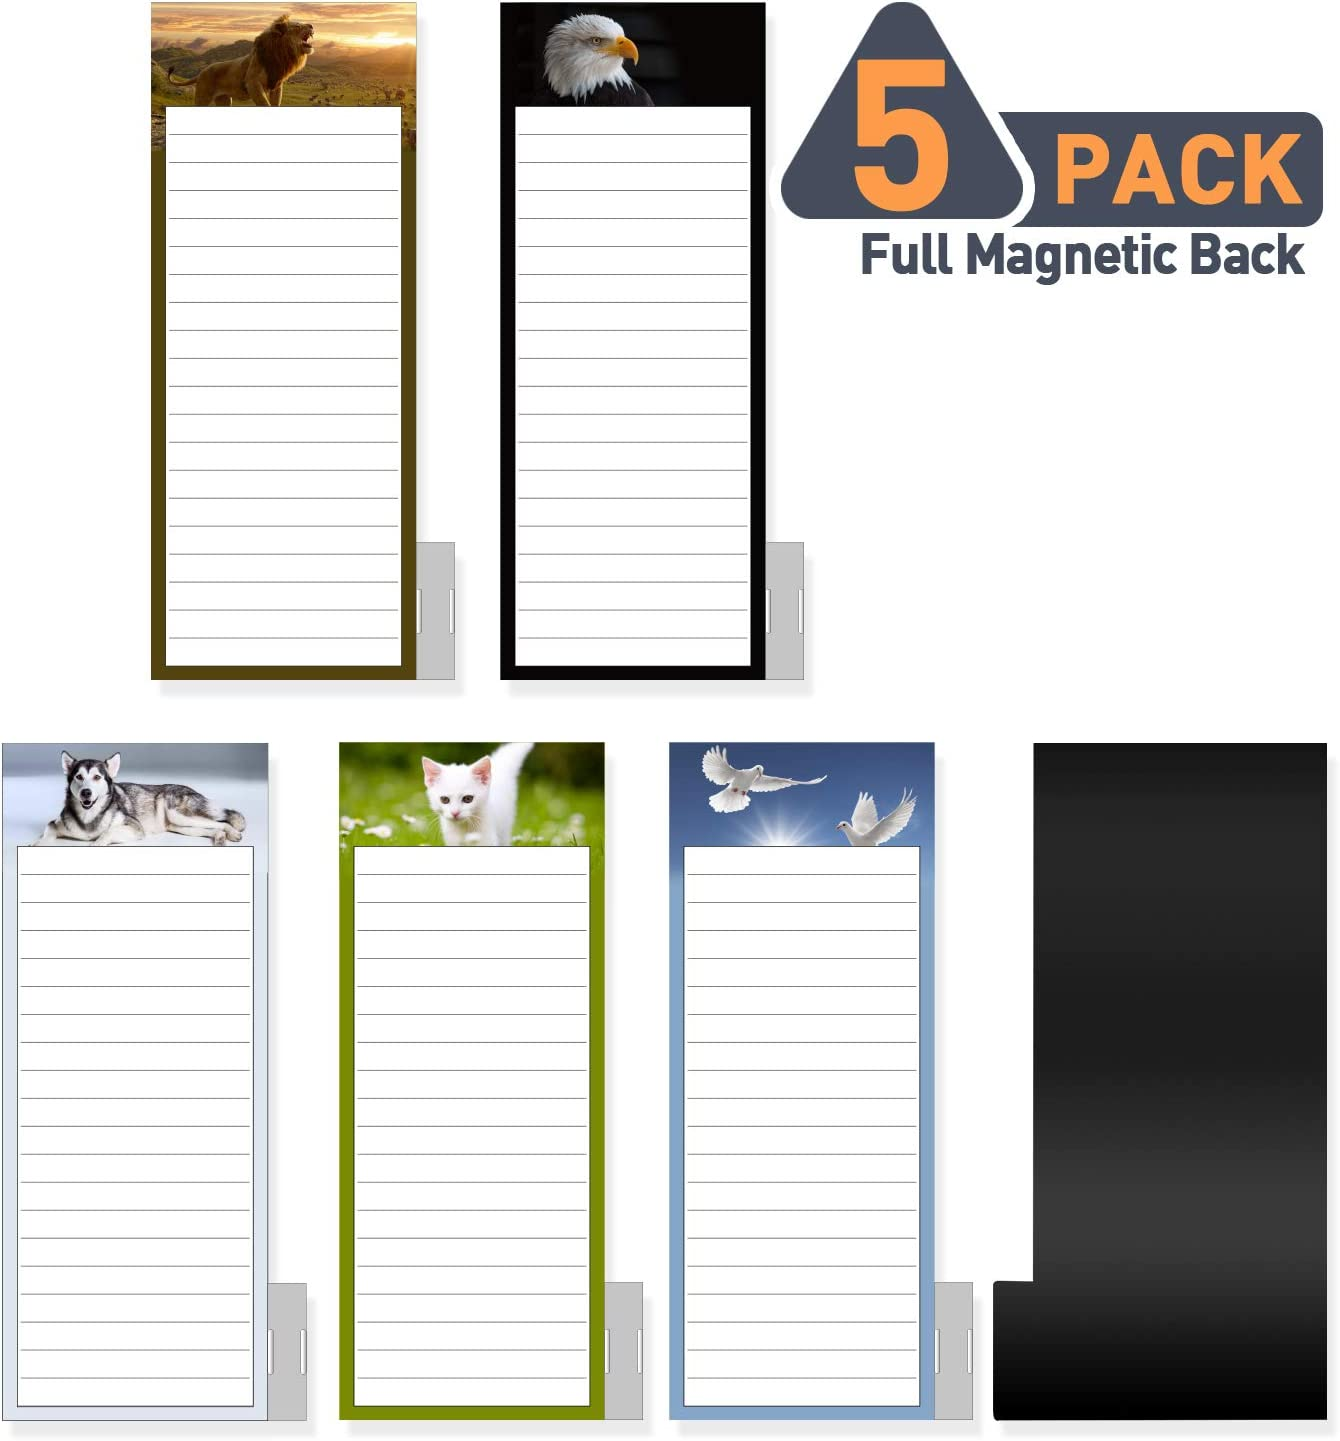 "5 Pack Bigger Full Magnetic Back To Do List Notepads for Fridge with Pen Holder, House Chores, Grocery Shopping and Reminders, Animal Theme Designs, 9"" x 3.5"", 50 Sheets, Magnet Memo Pad"